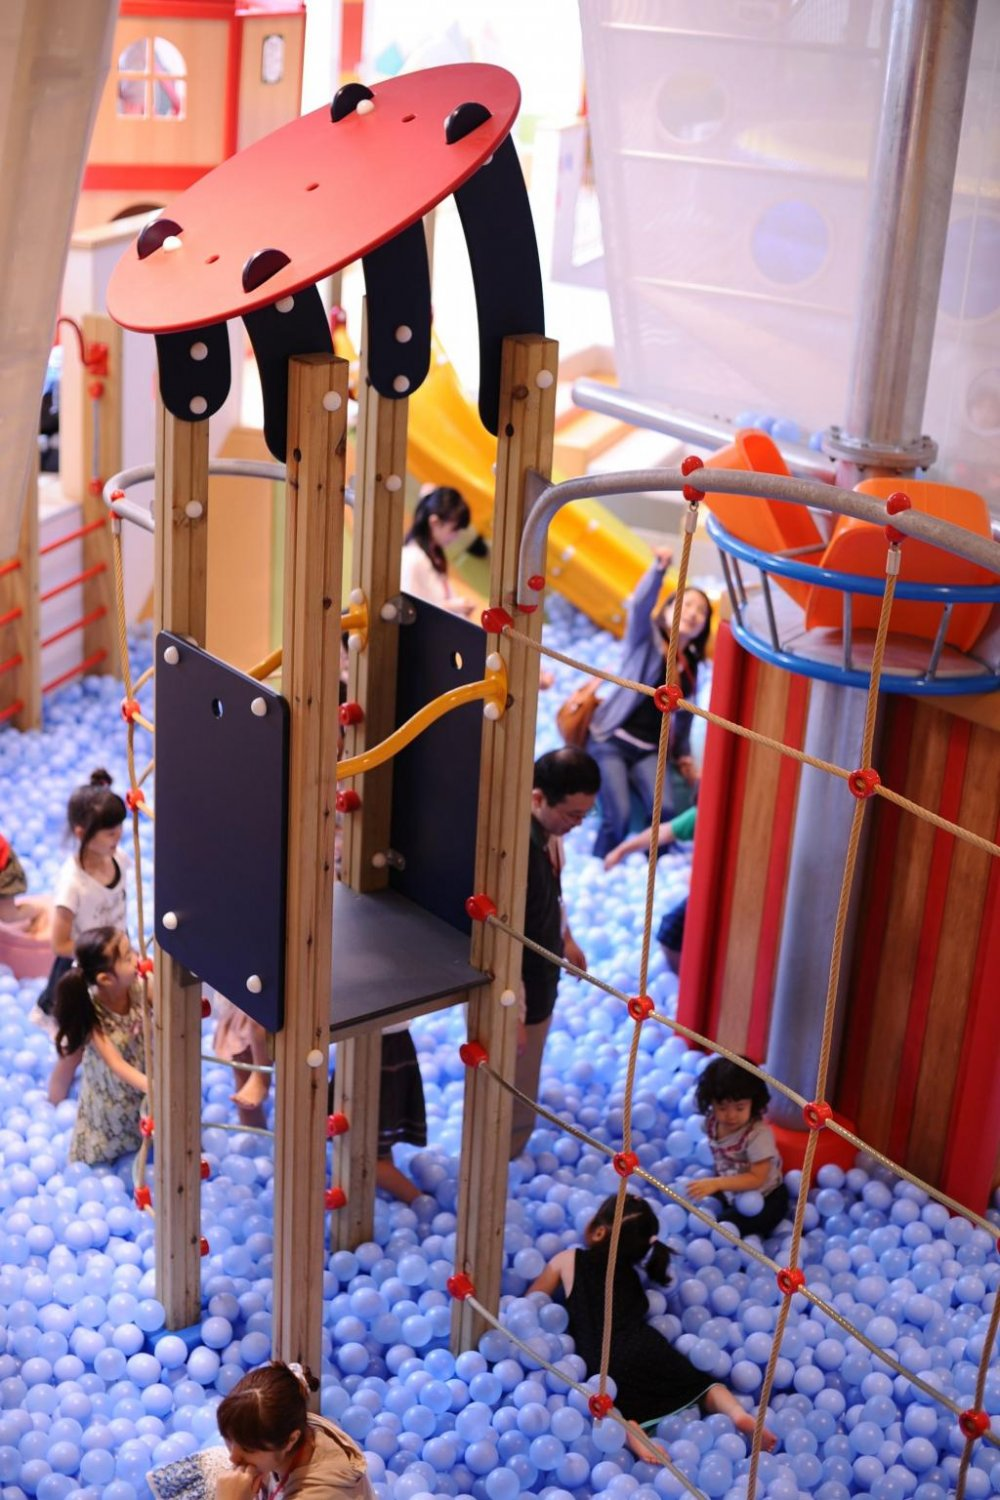 The 'ocean' area has a climbable pirate ship and giant ball pit